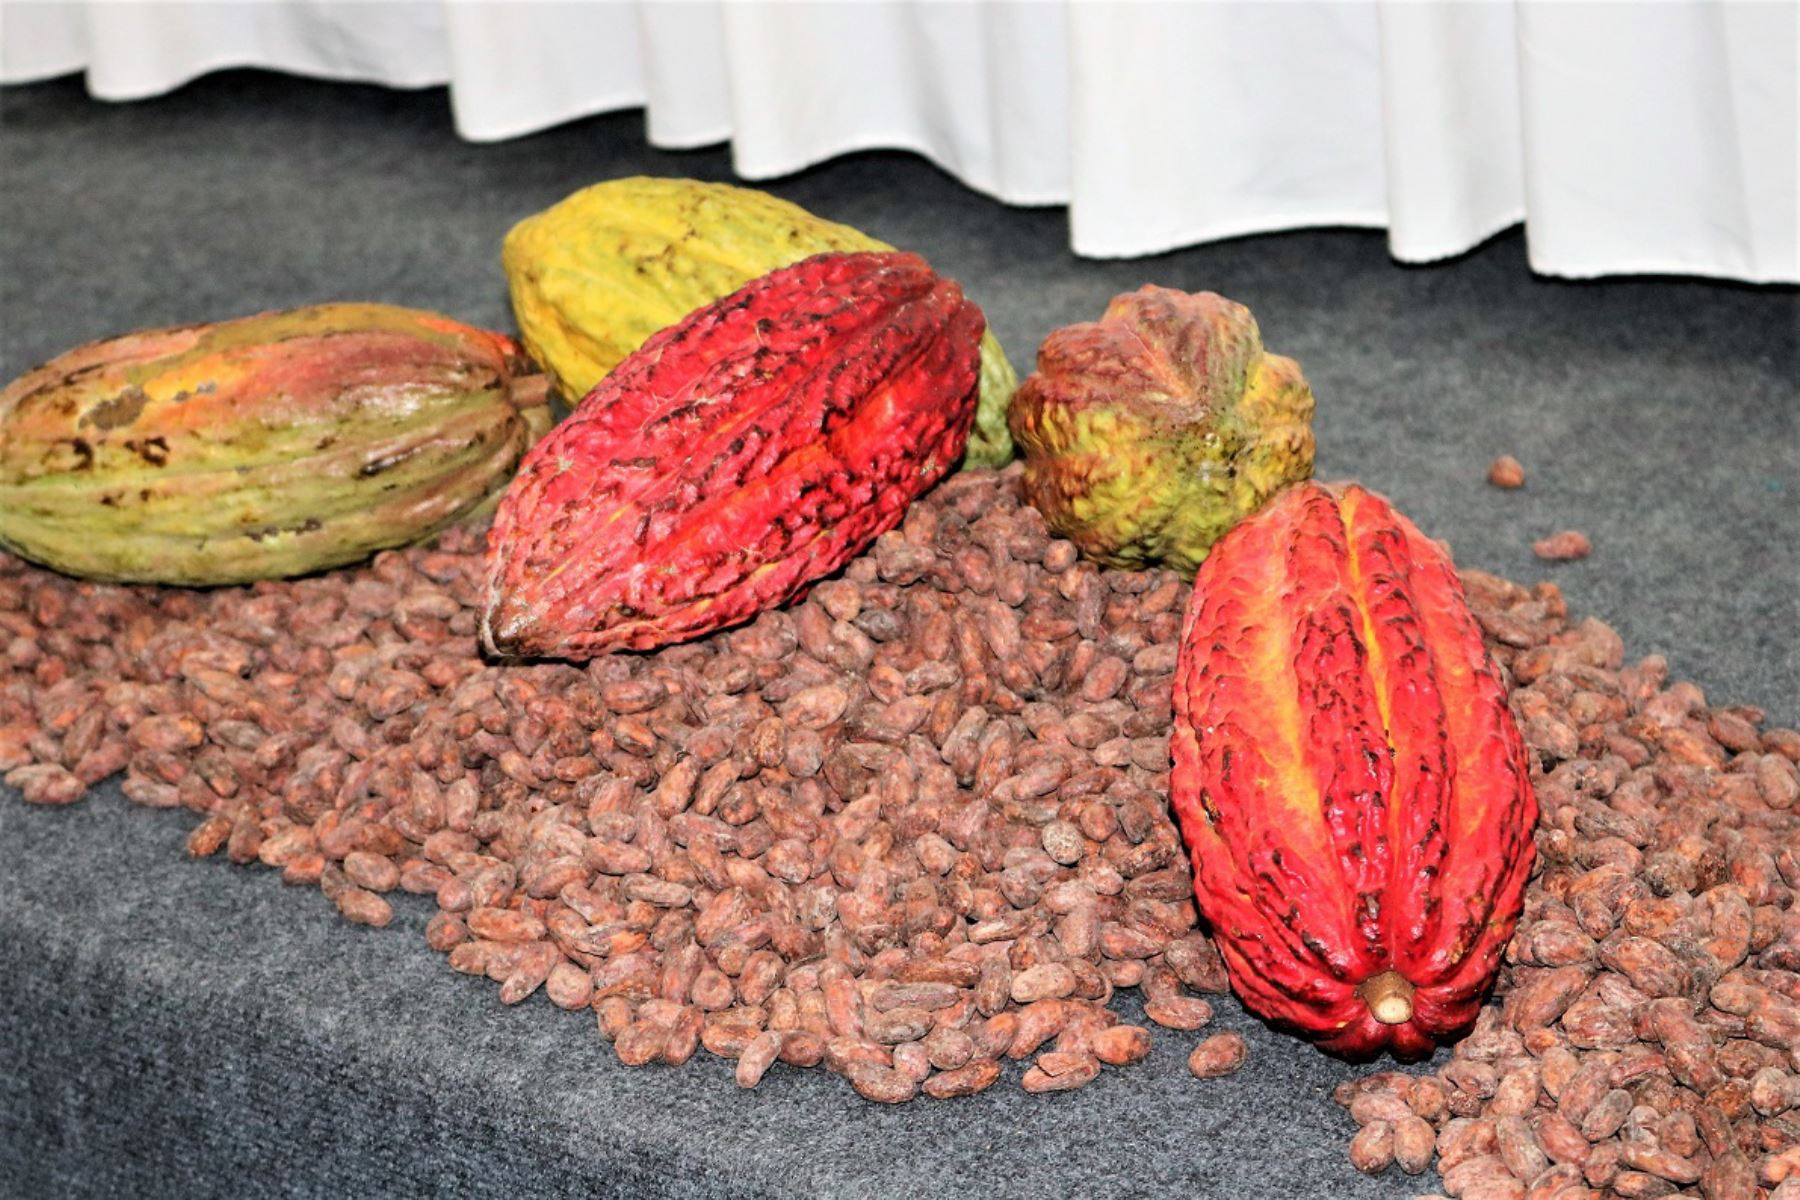 Peruvian chocolate claims first place at well-known London fair